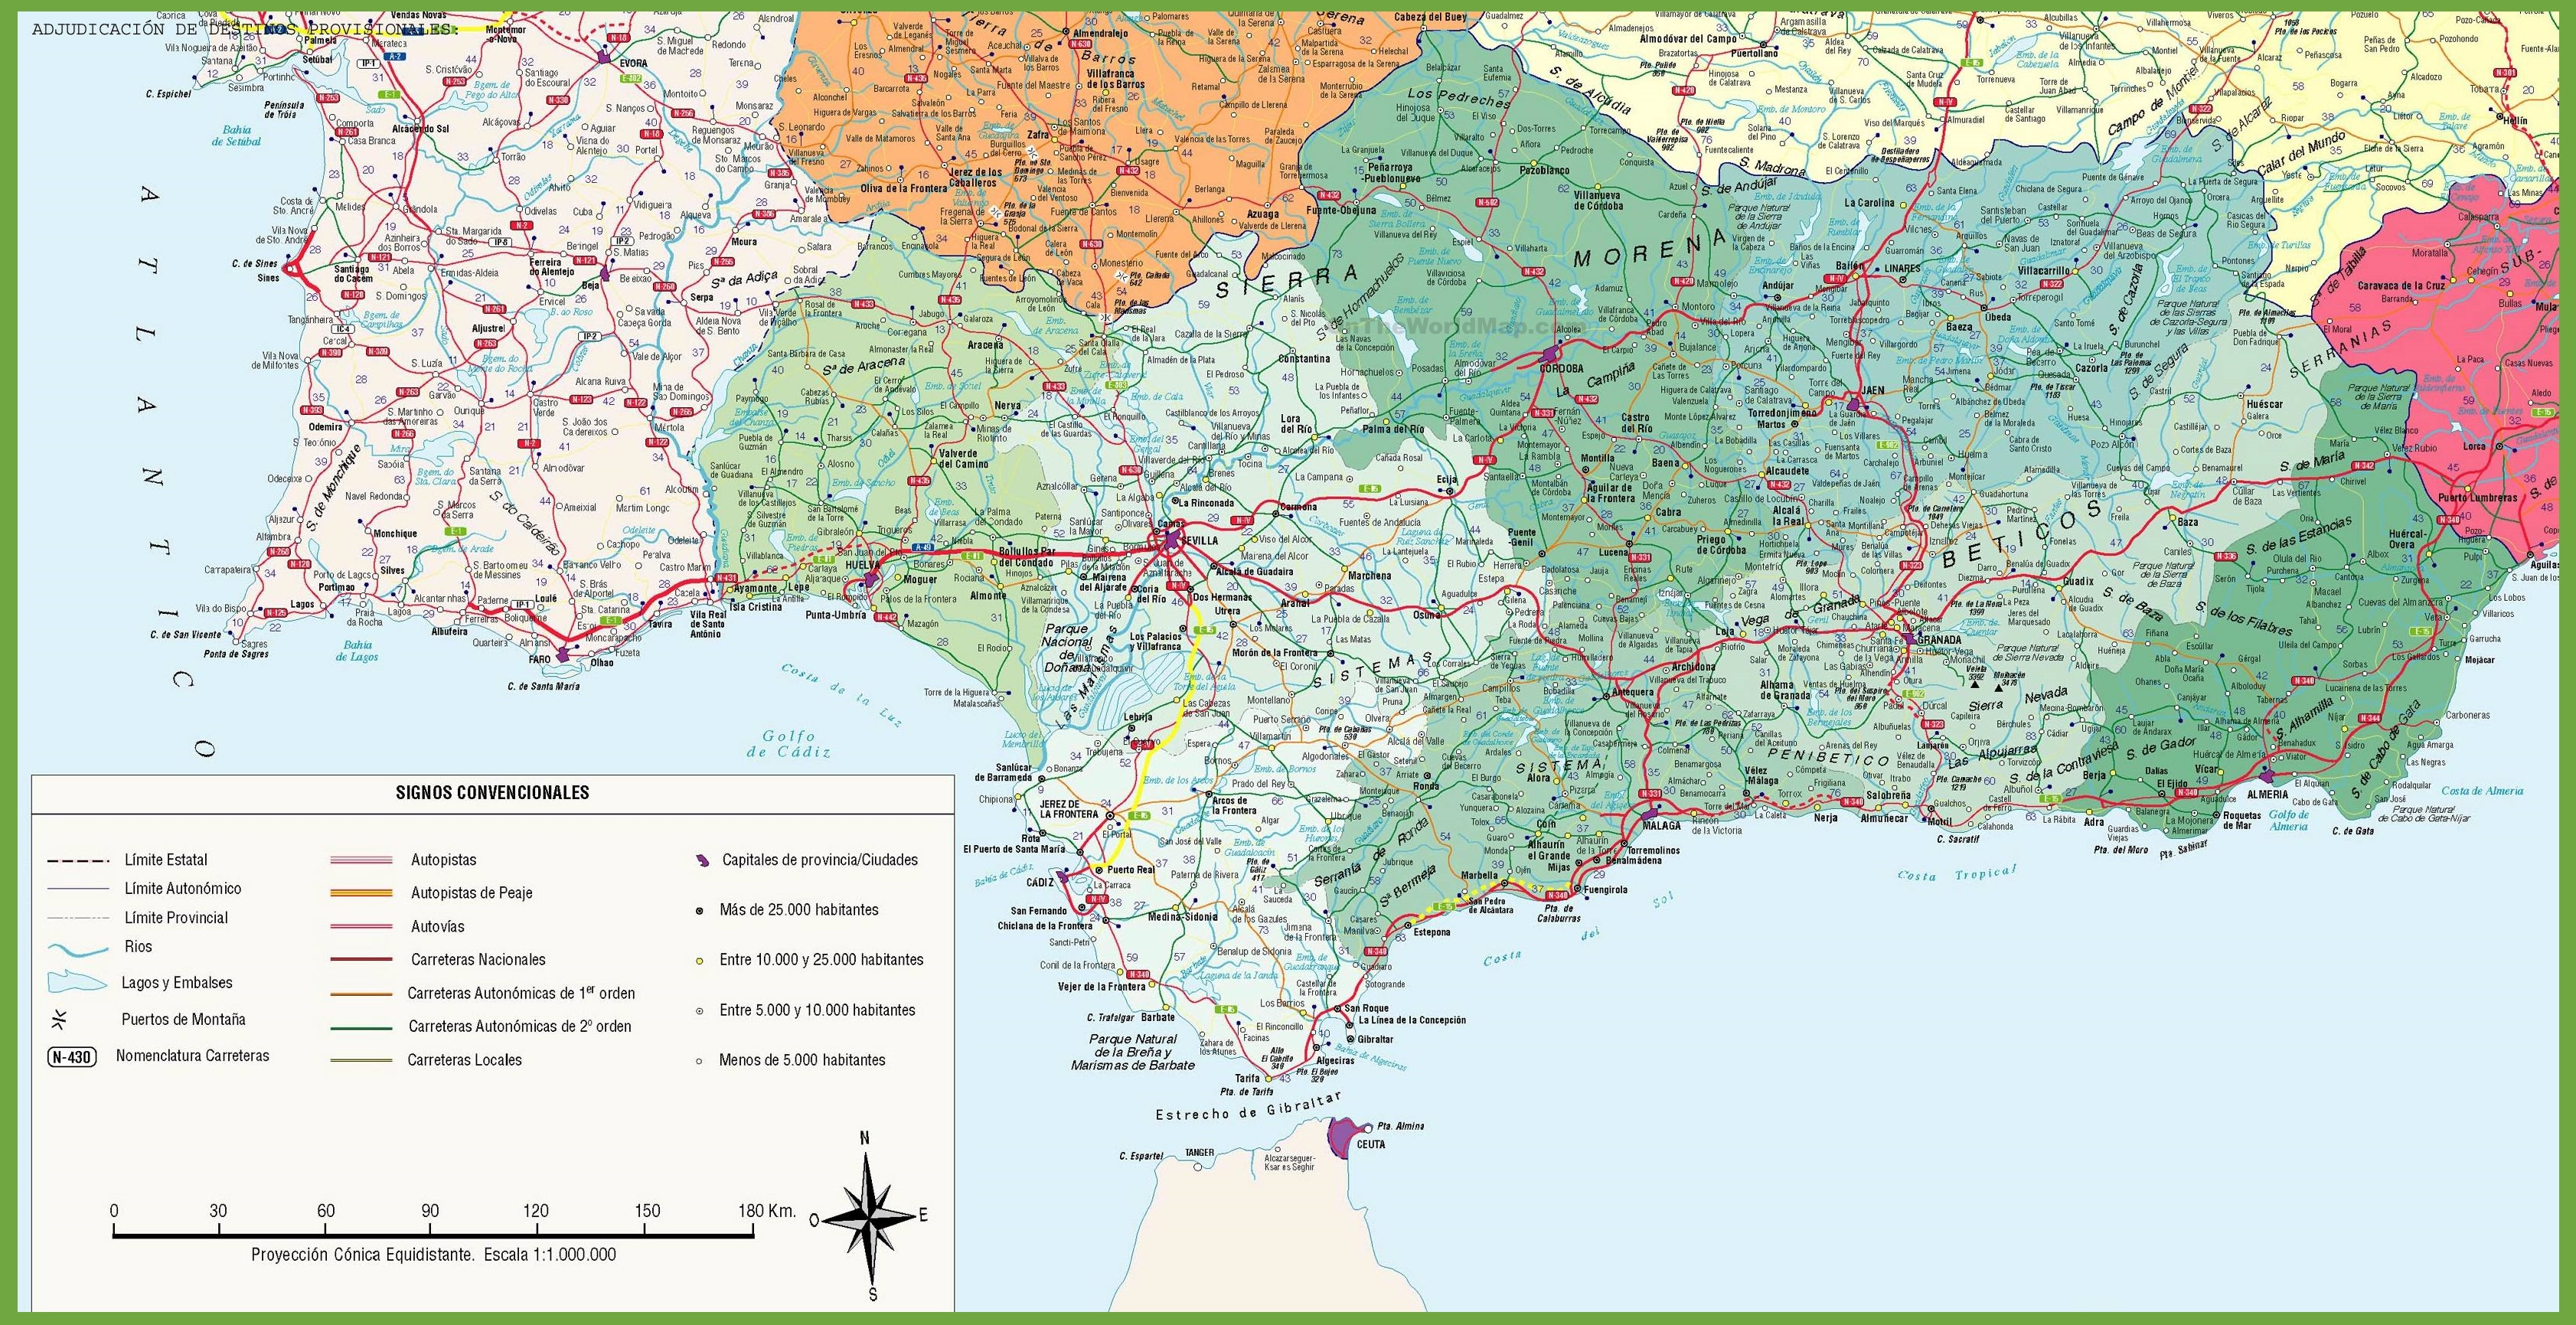 Andalucia On Map Of Spain.Large Detailed Map Of Andalusia With Cities And Towns